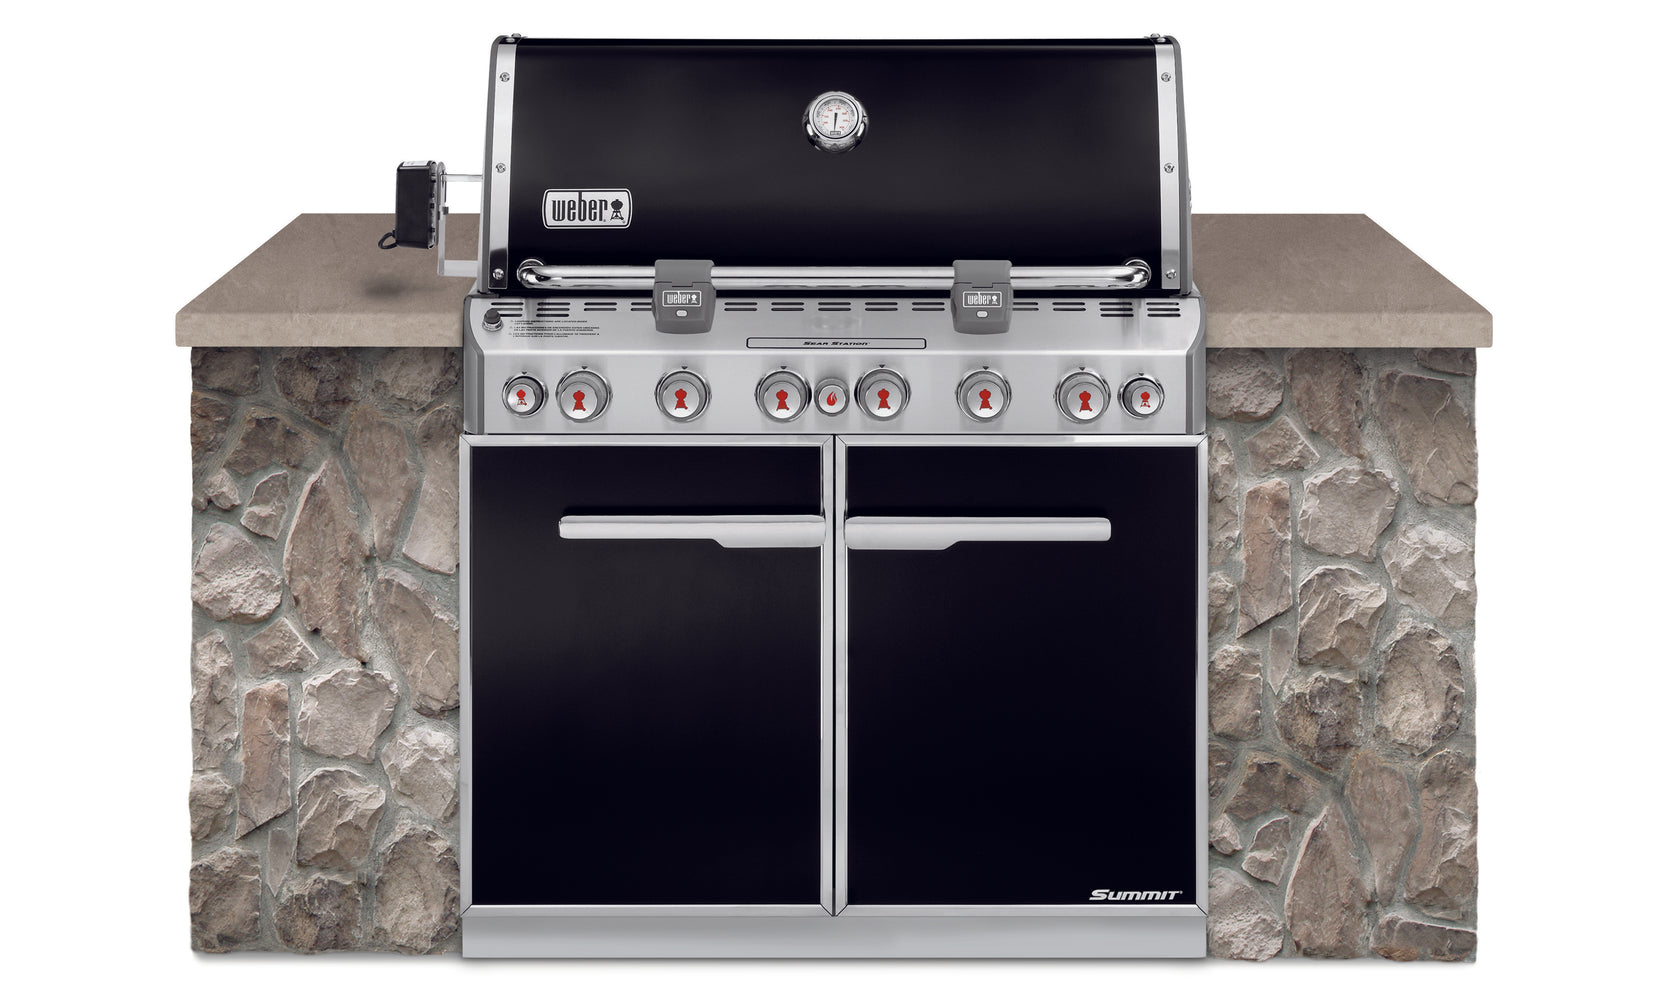 WEBER SUMMIT E-660 BUILT-IN